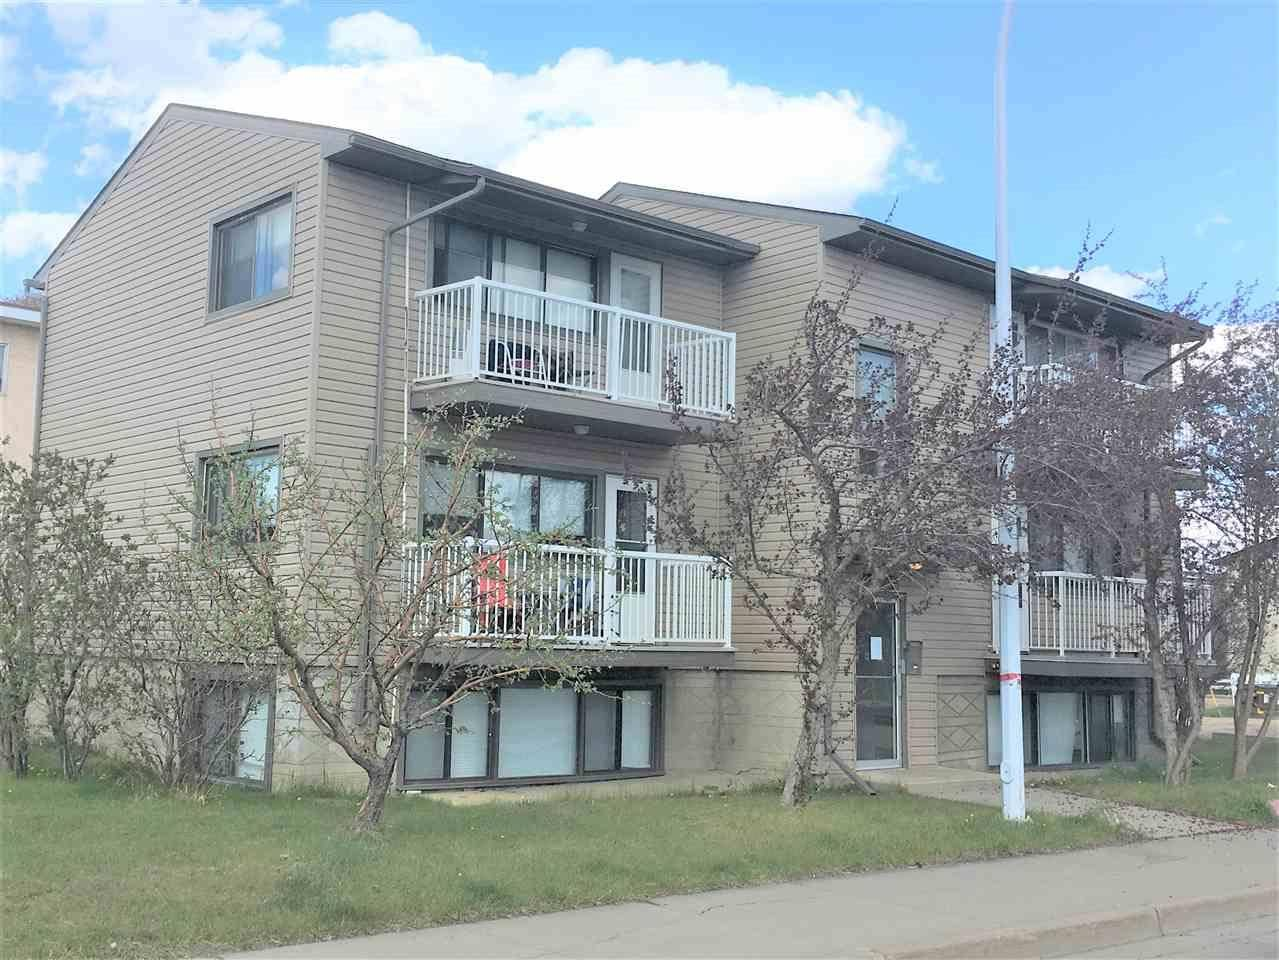 Townhouse for sale at 15430 100 Ave Nw Edmonton Alberta - MLS: E4159153